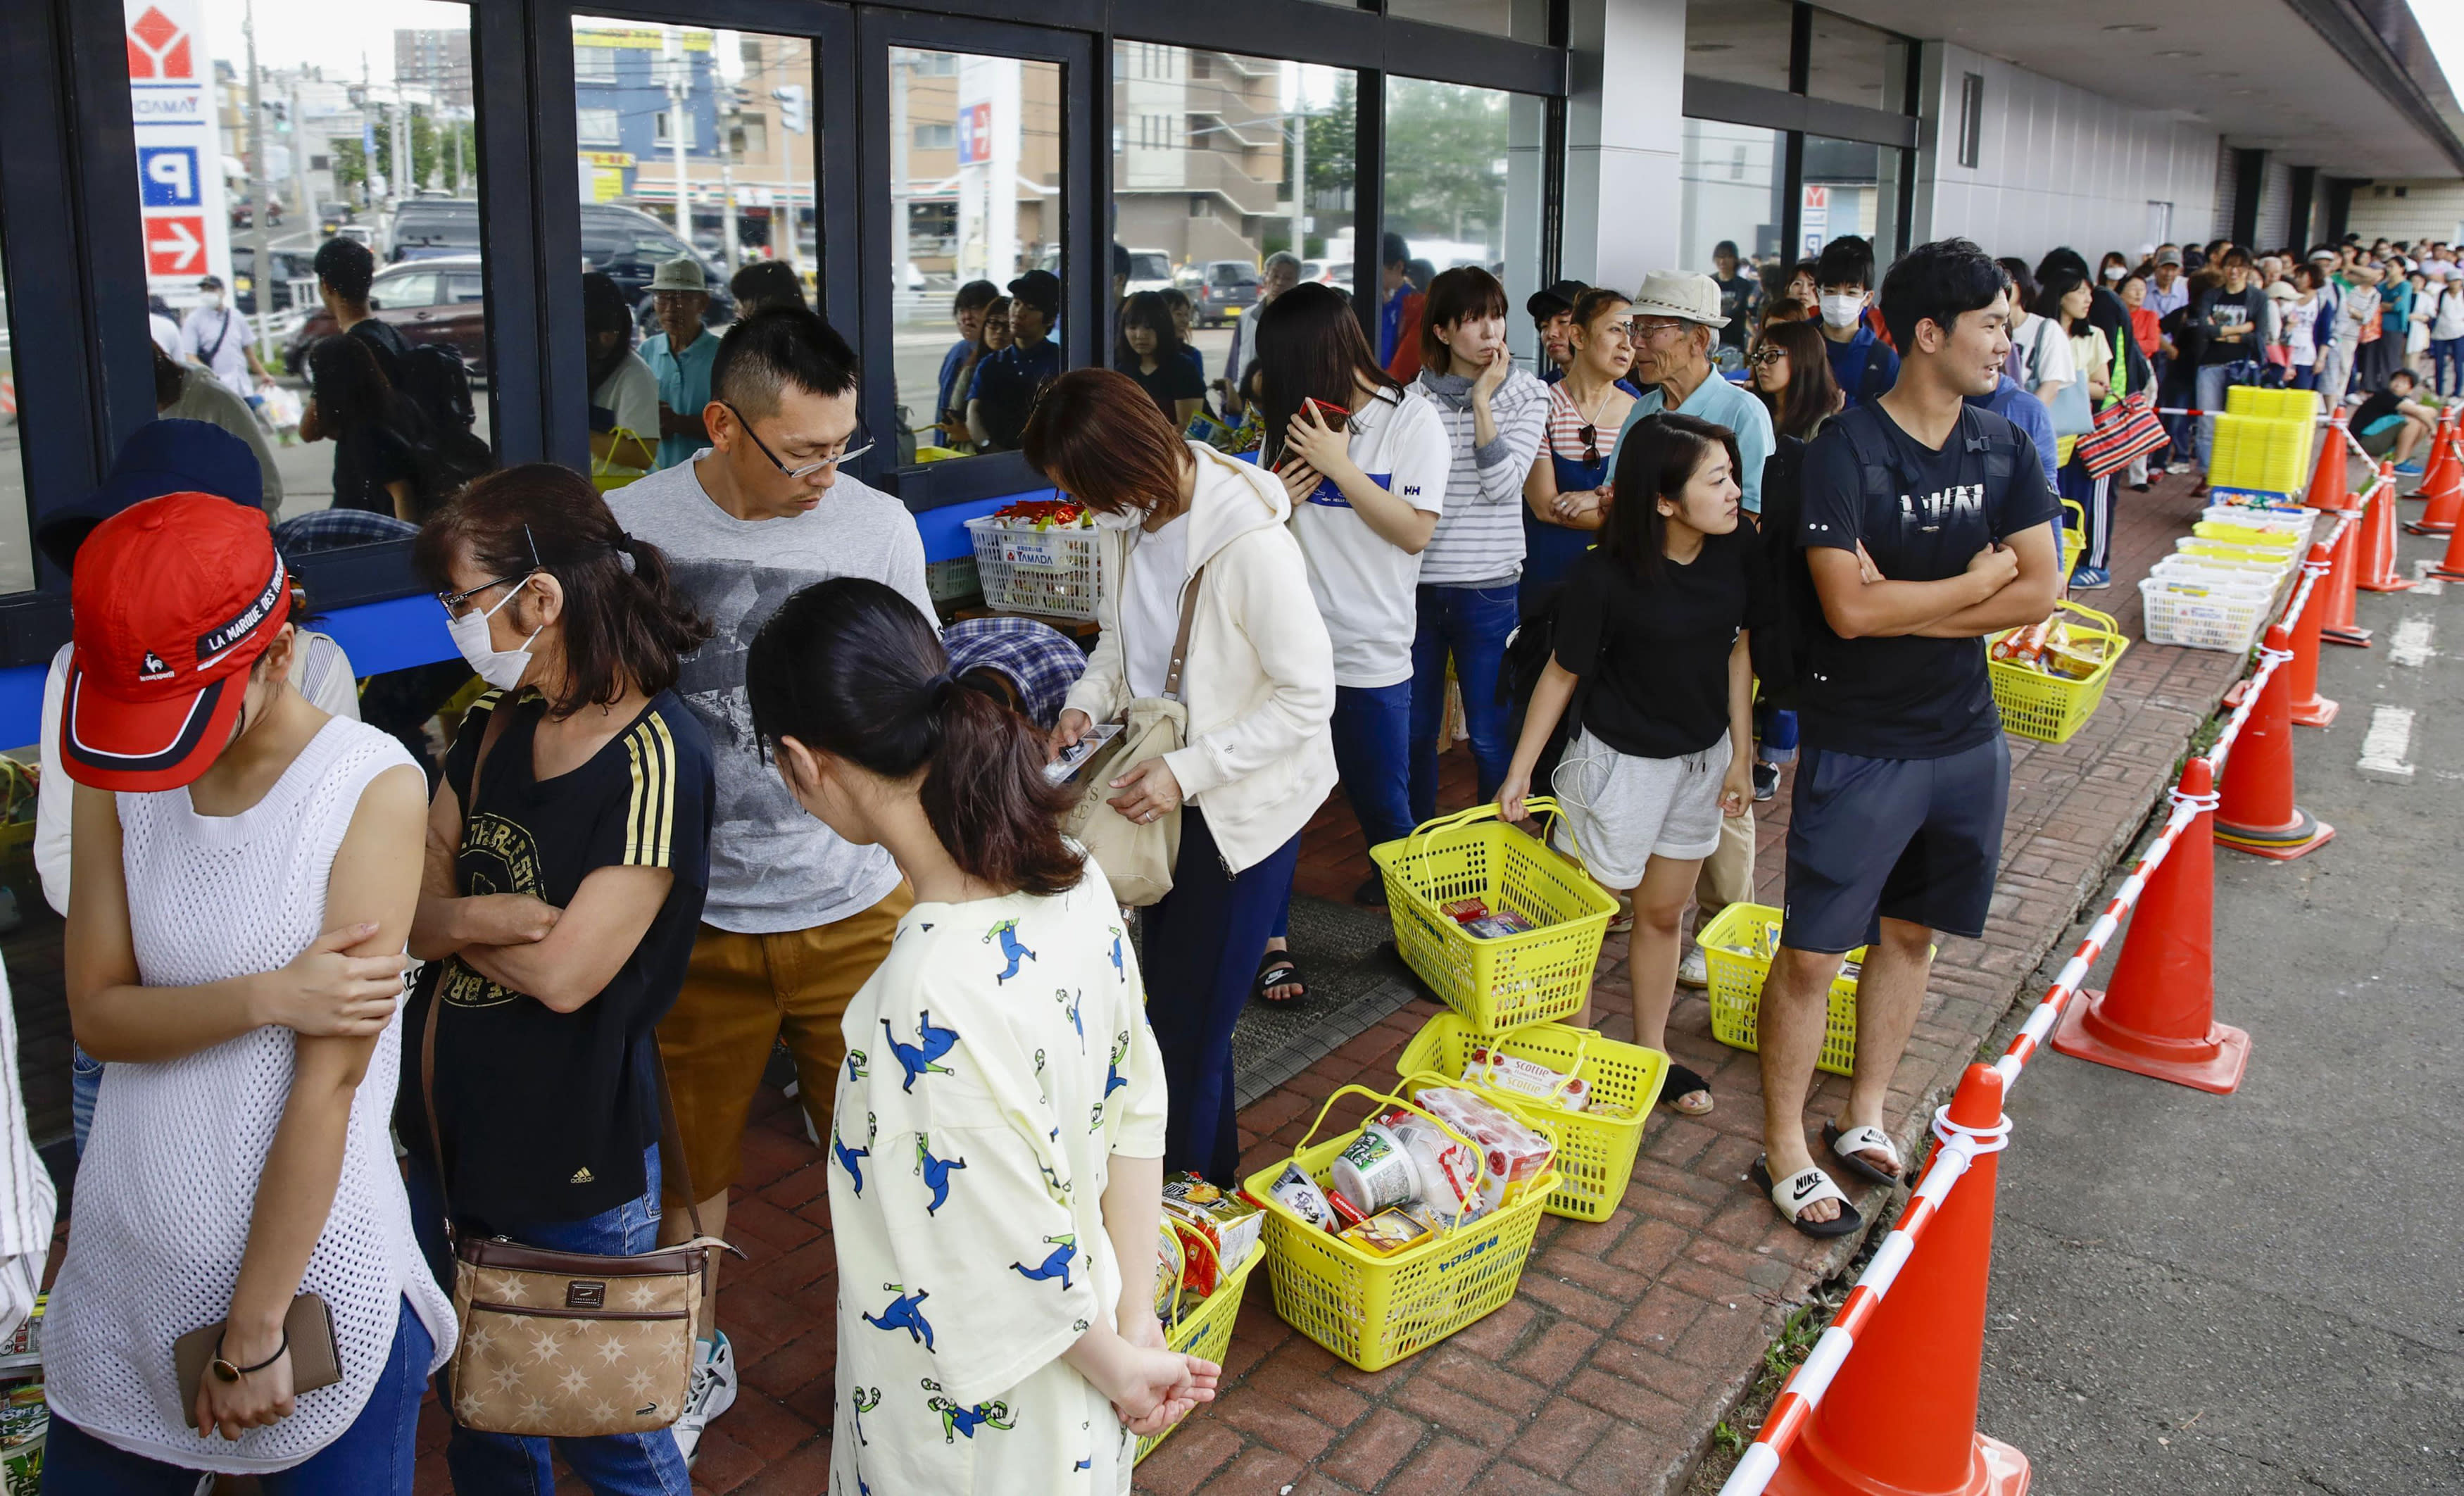 <p>People wait in a long line to buy foods at a store in Sapporo, Hokkaido, northern Japan Thursday, Sept. 6, 2018. (Photo: Hiroki Yamauchi/Kyodo News via AP) </p>